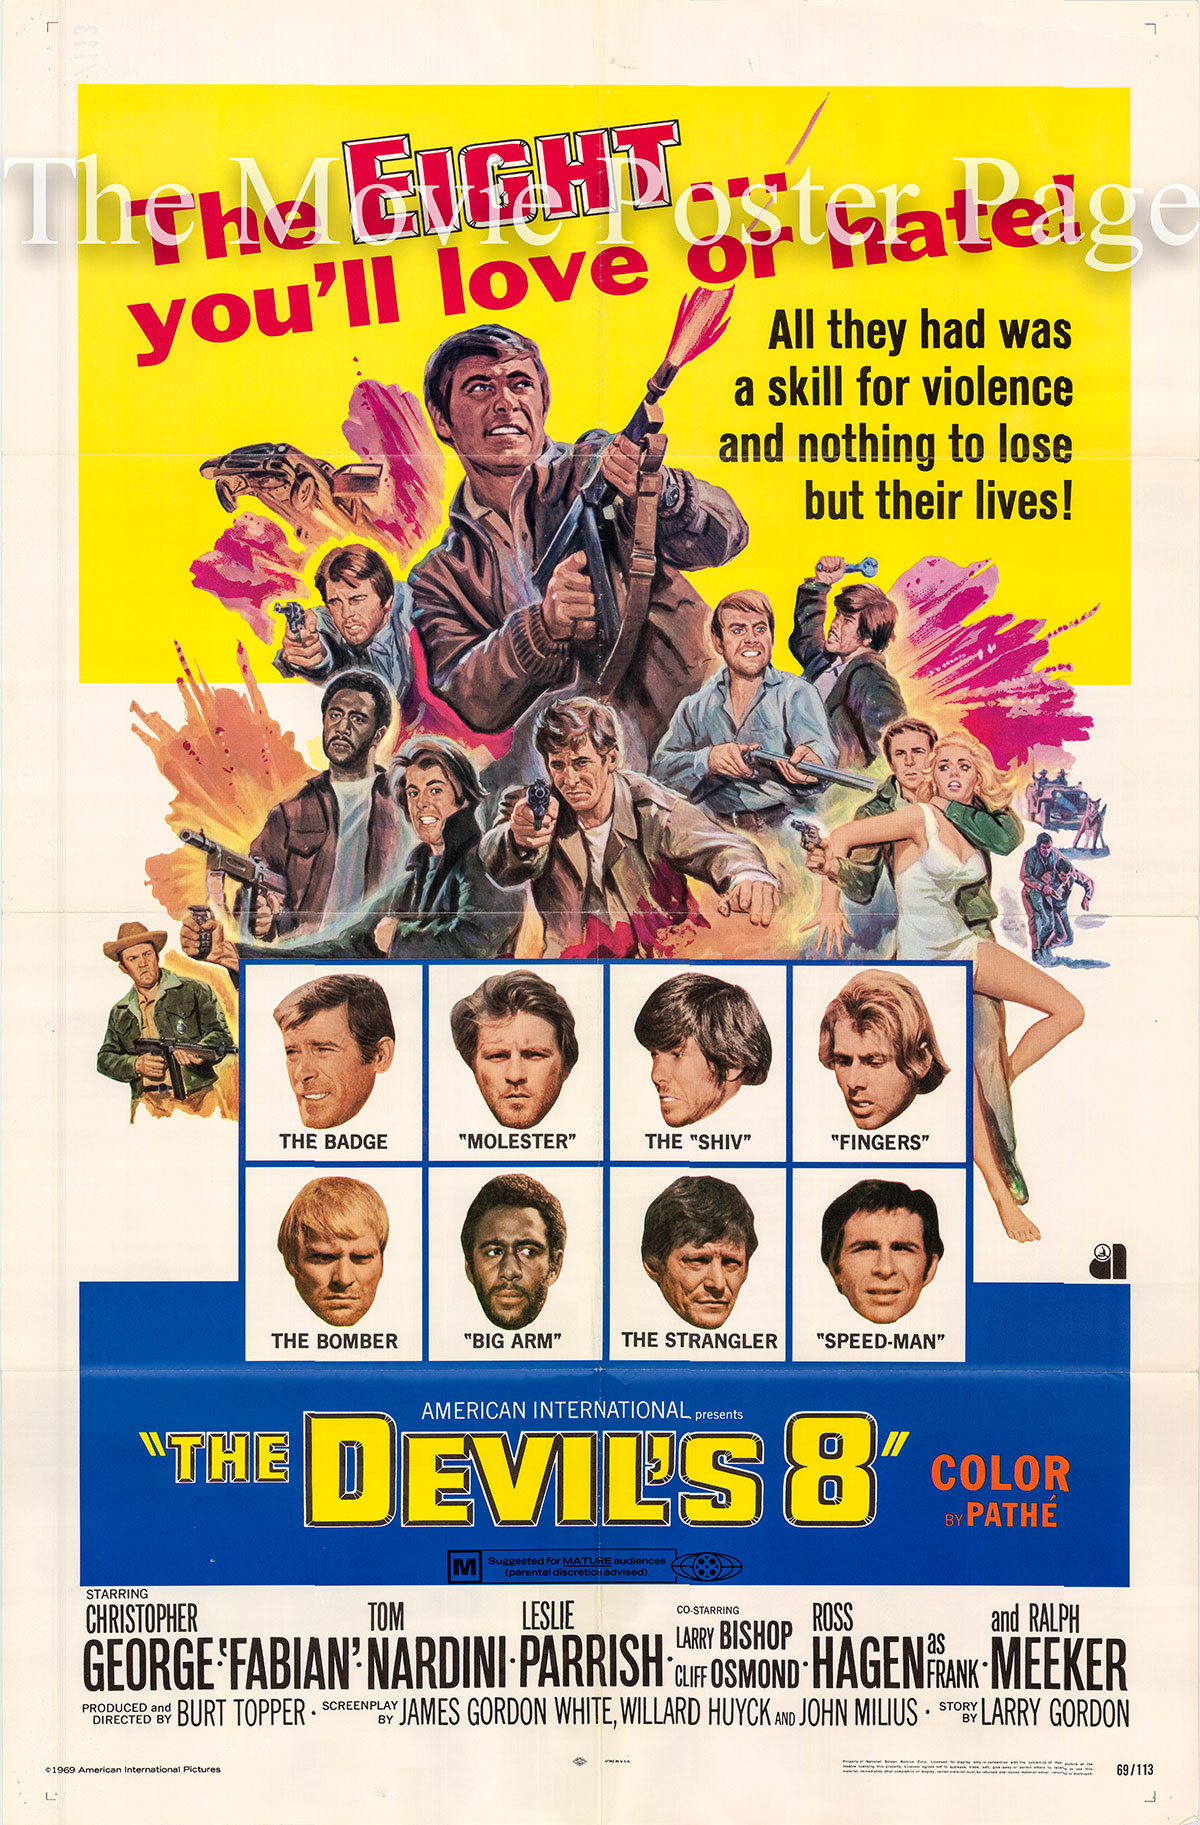 Pictured is a US one-sheet promotional poster for the 1969 Burt Topper film The Devils 8 starring Christopher George as Ray Faulkner and Fabian as Sonny.